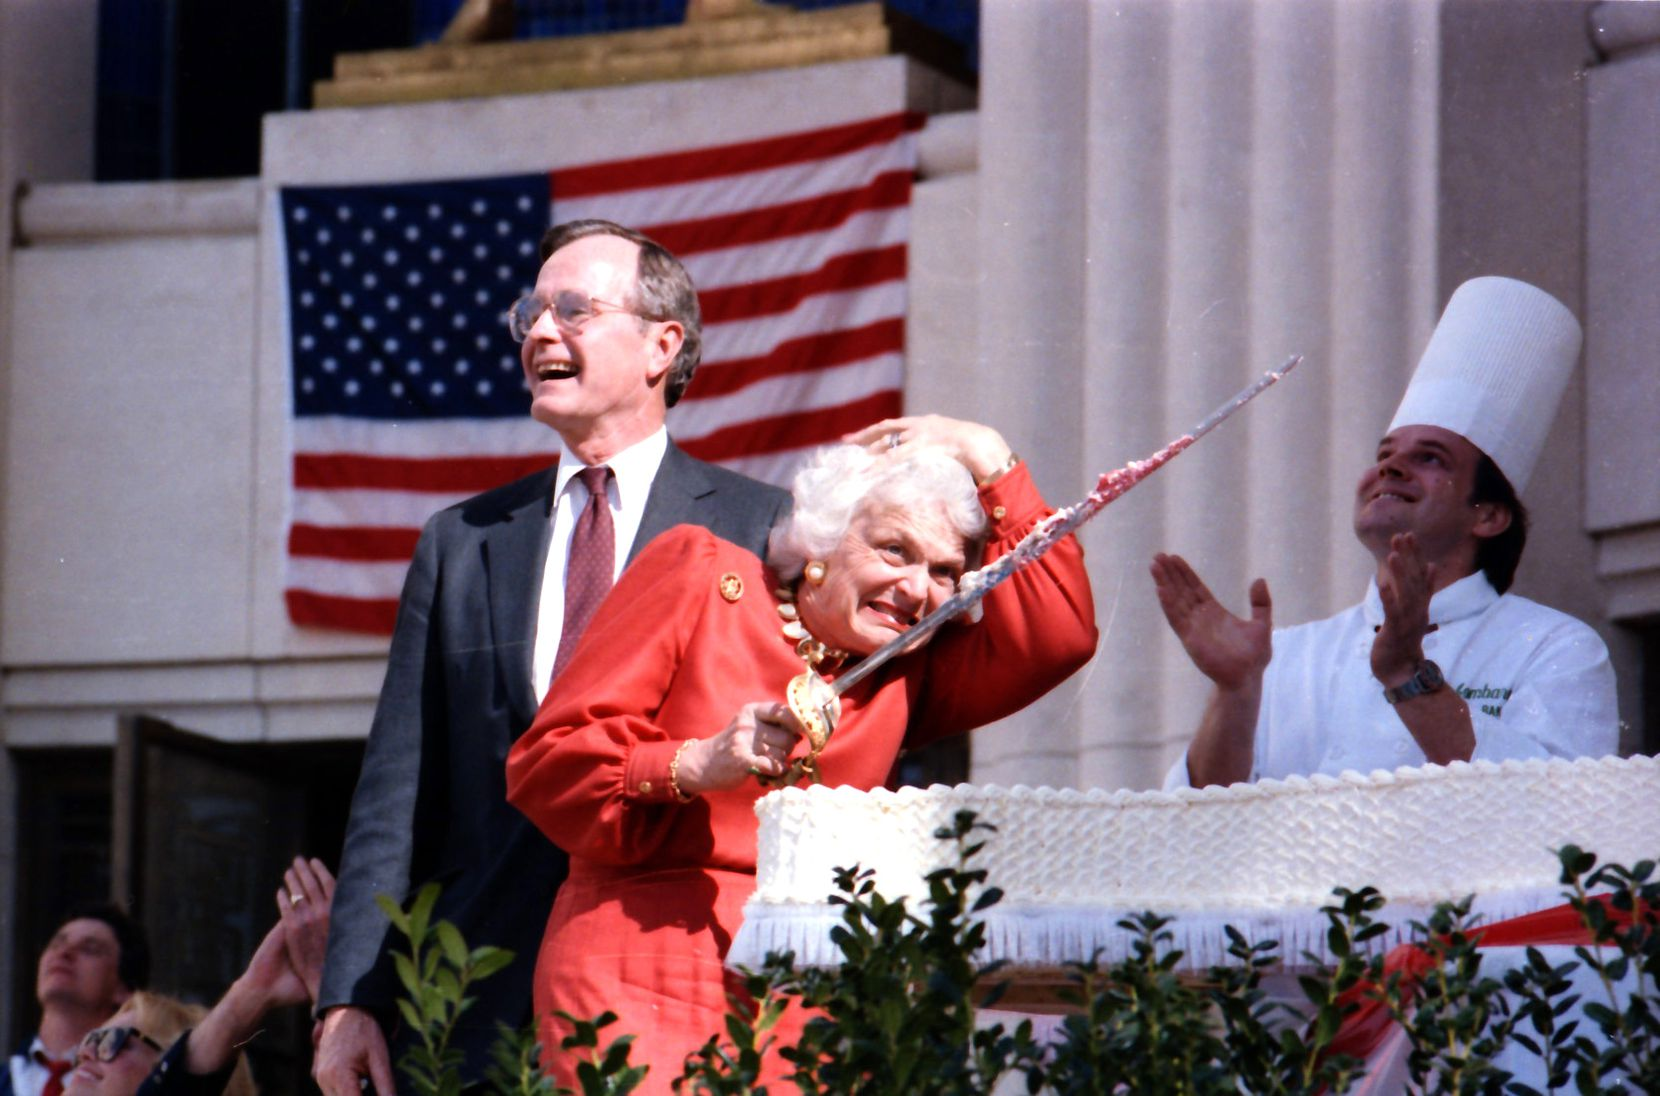 1986: Vice President George Bush laughs as his wife, Barbara, offers a startled reaction to a ceremonial fly-over by jets during cake-cutting ceremonies celebrating the Texas sesquicentennial at Fair Park in Dallas.